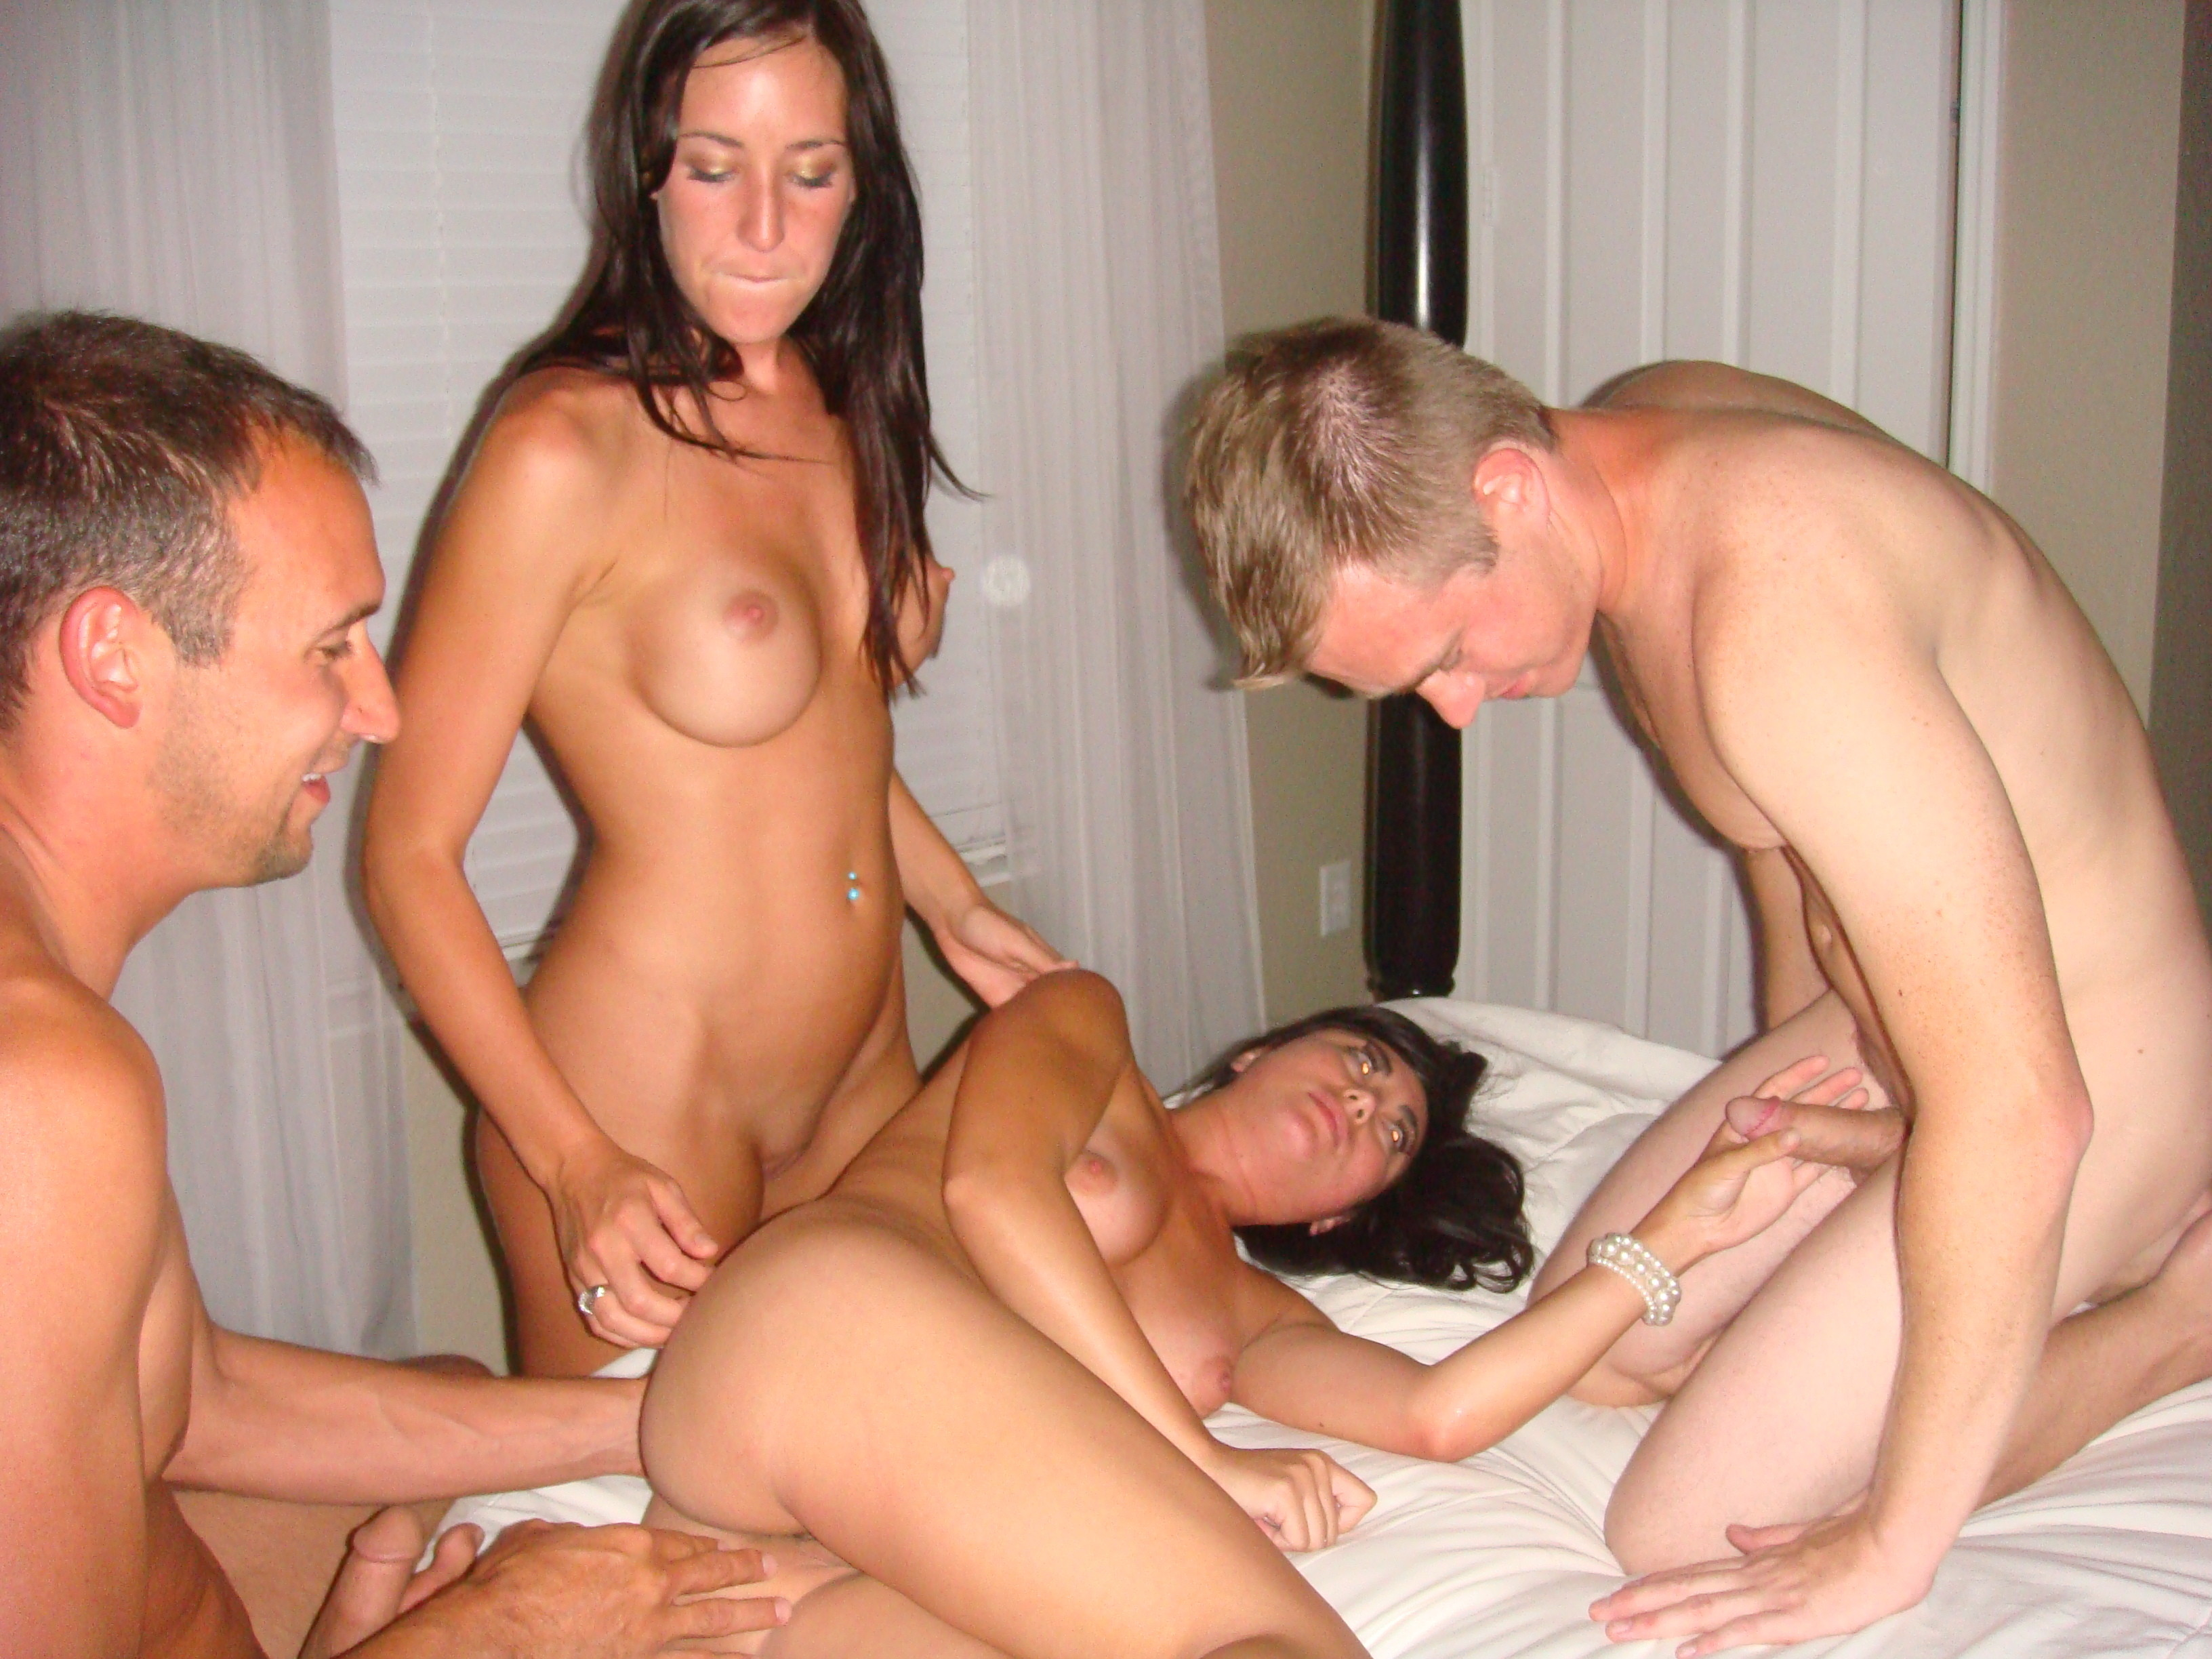 Free Am Xxx Swingers Pics